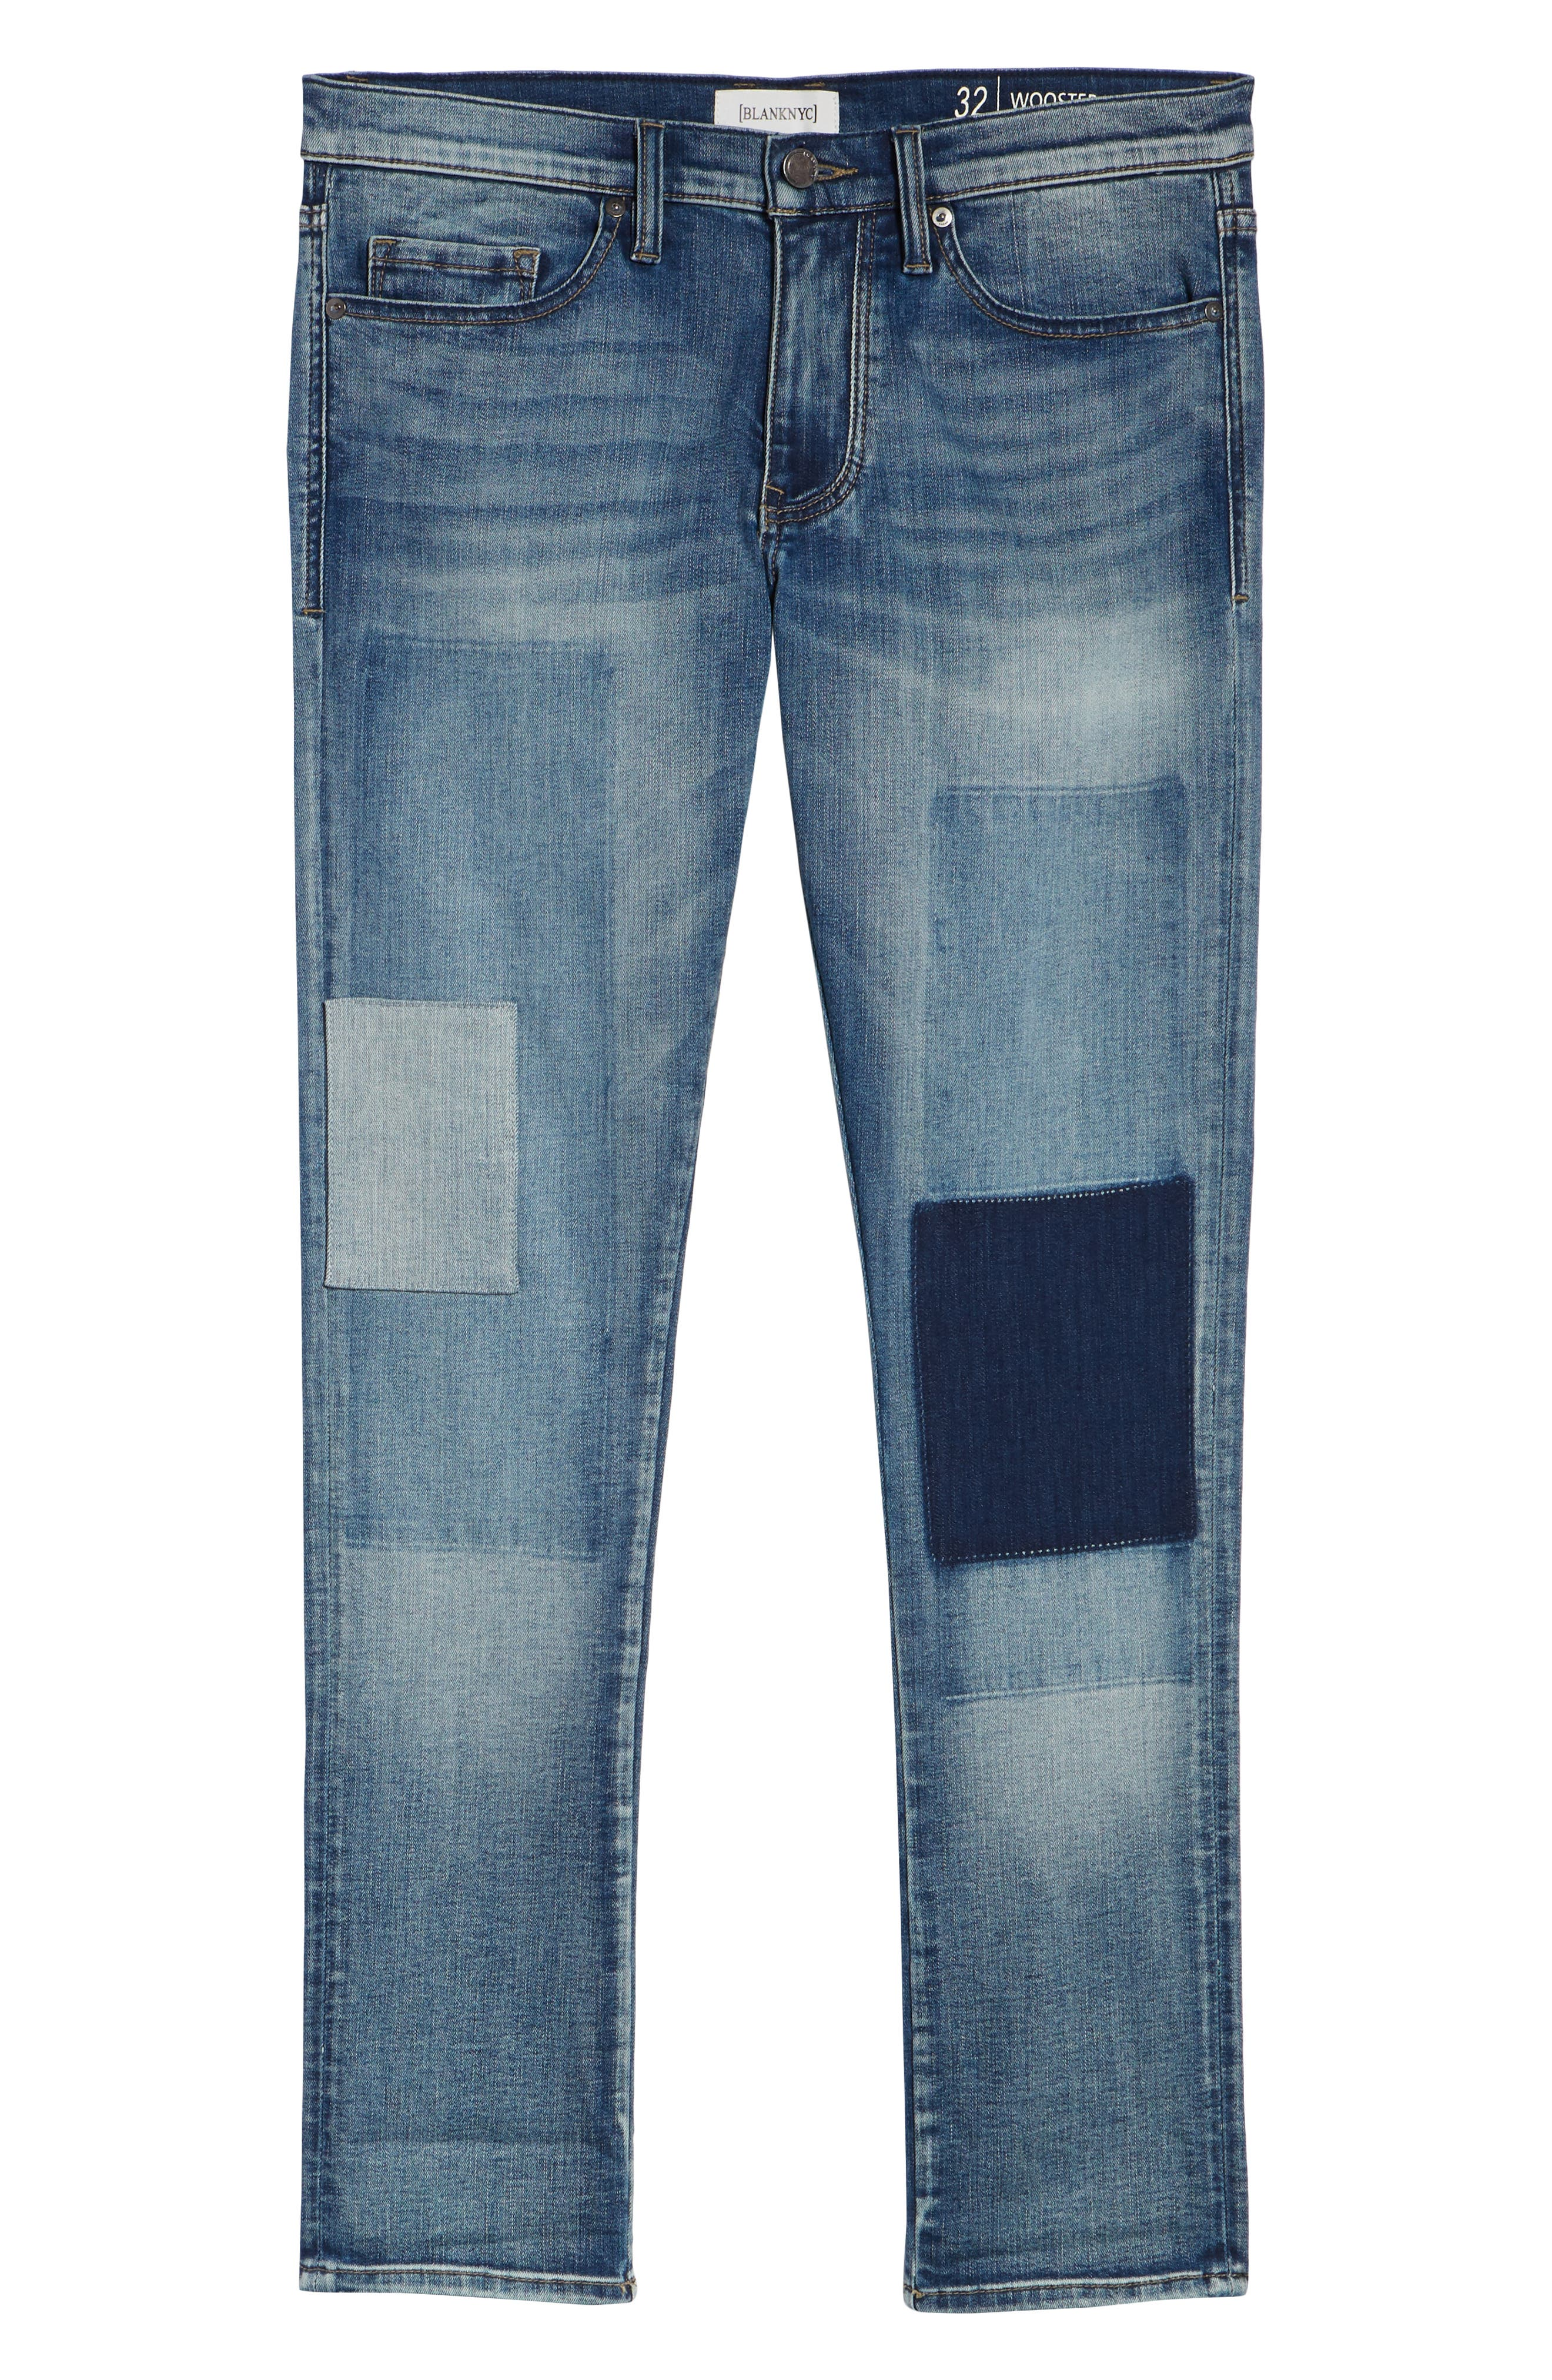 Stanton Straight Leg Jeans,                             Alternate thumbnail 6, color,                             COLD ONE